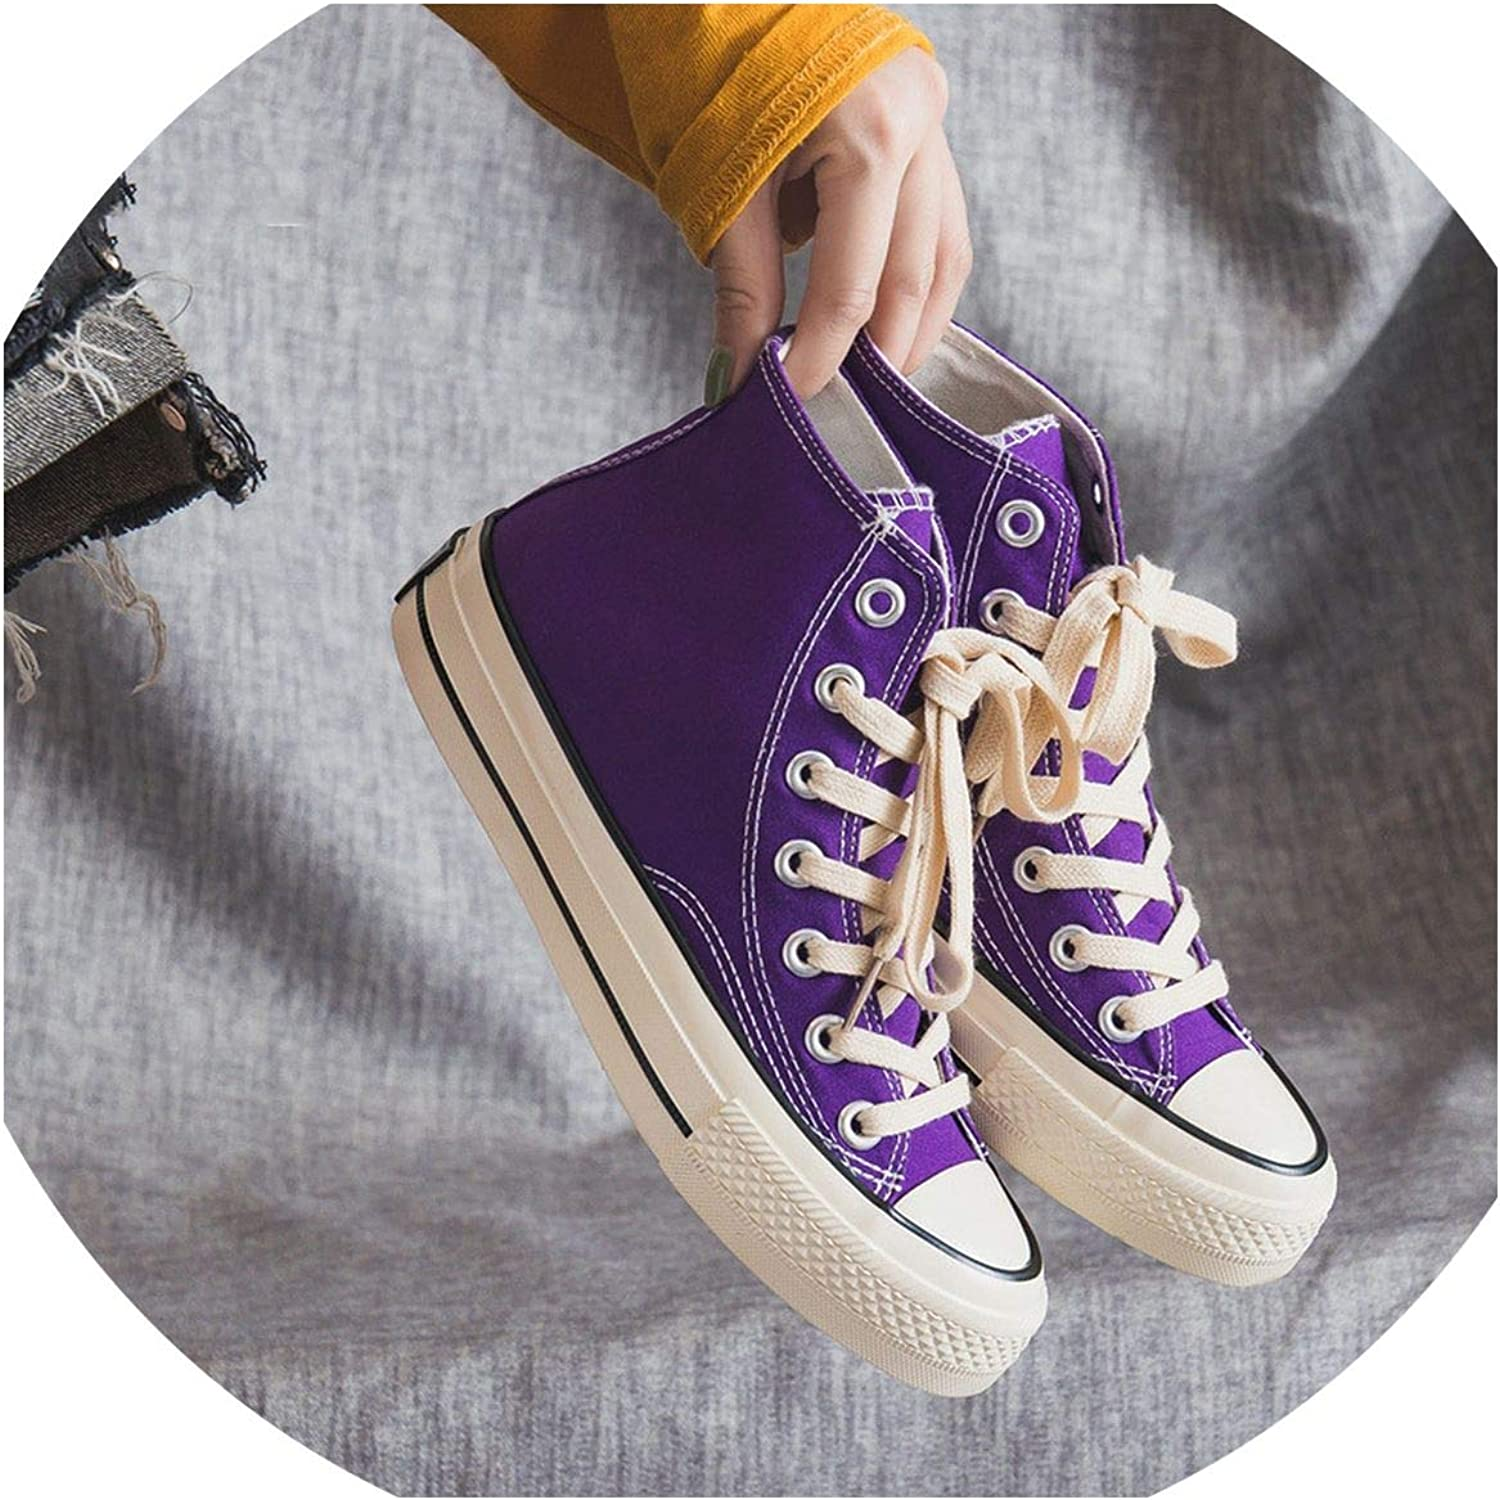 Women shoes Casual Flats Solid Canvas Classic Solid color High Top Women Casual shoes Sneakers